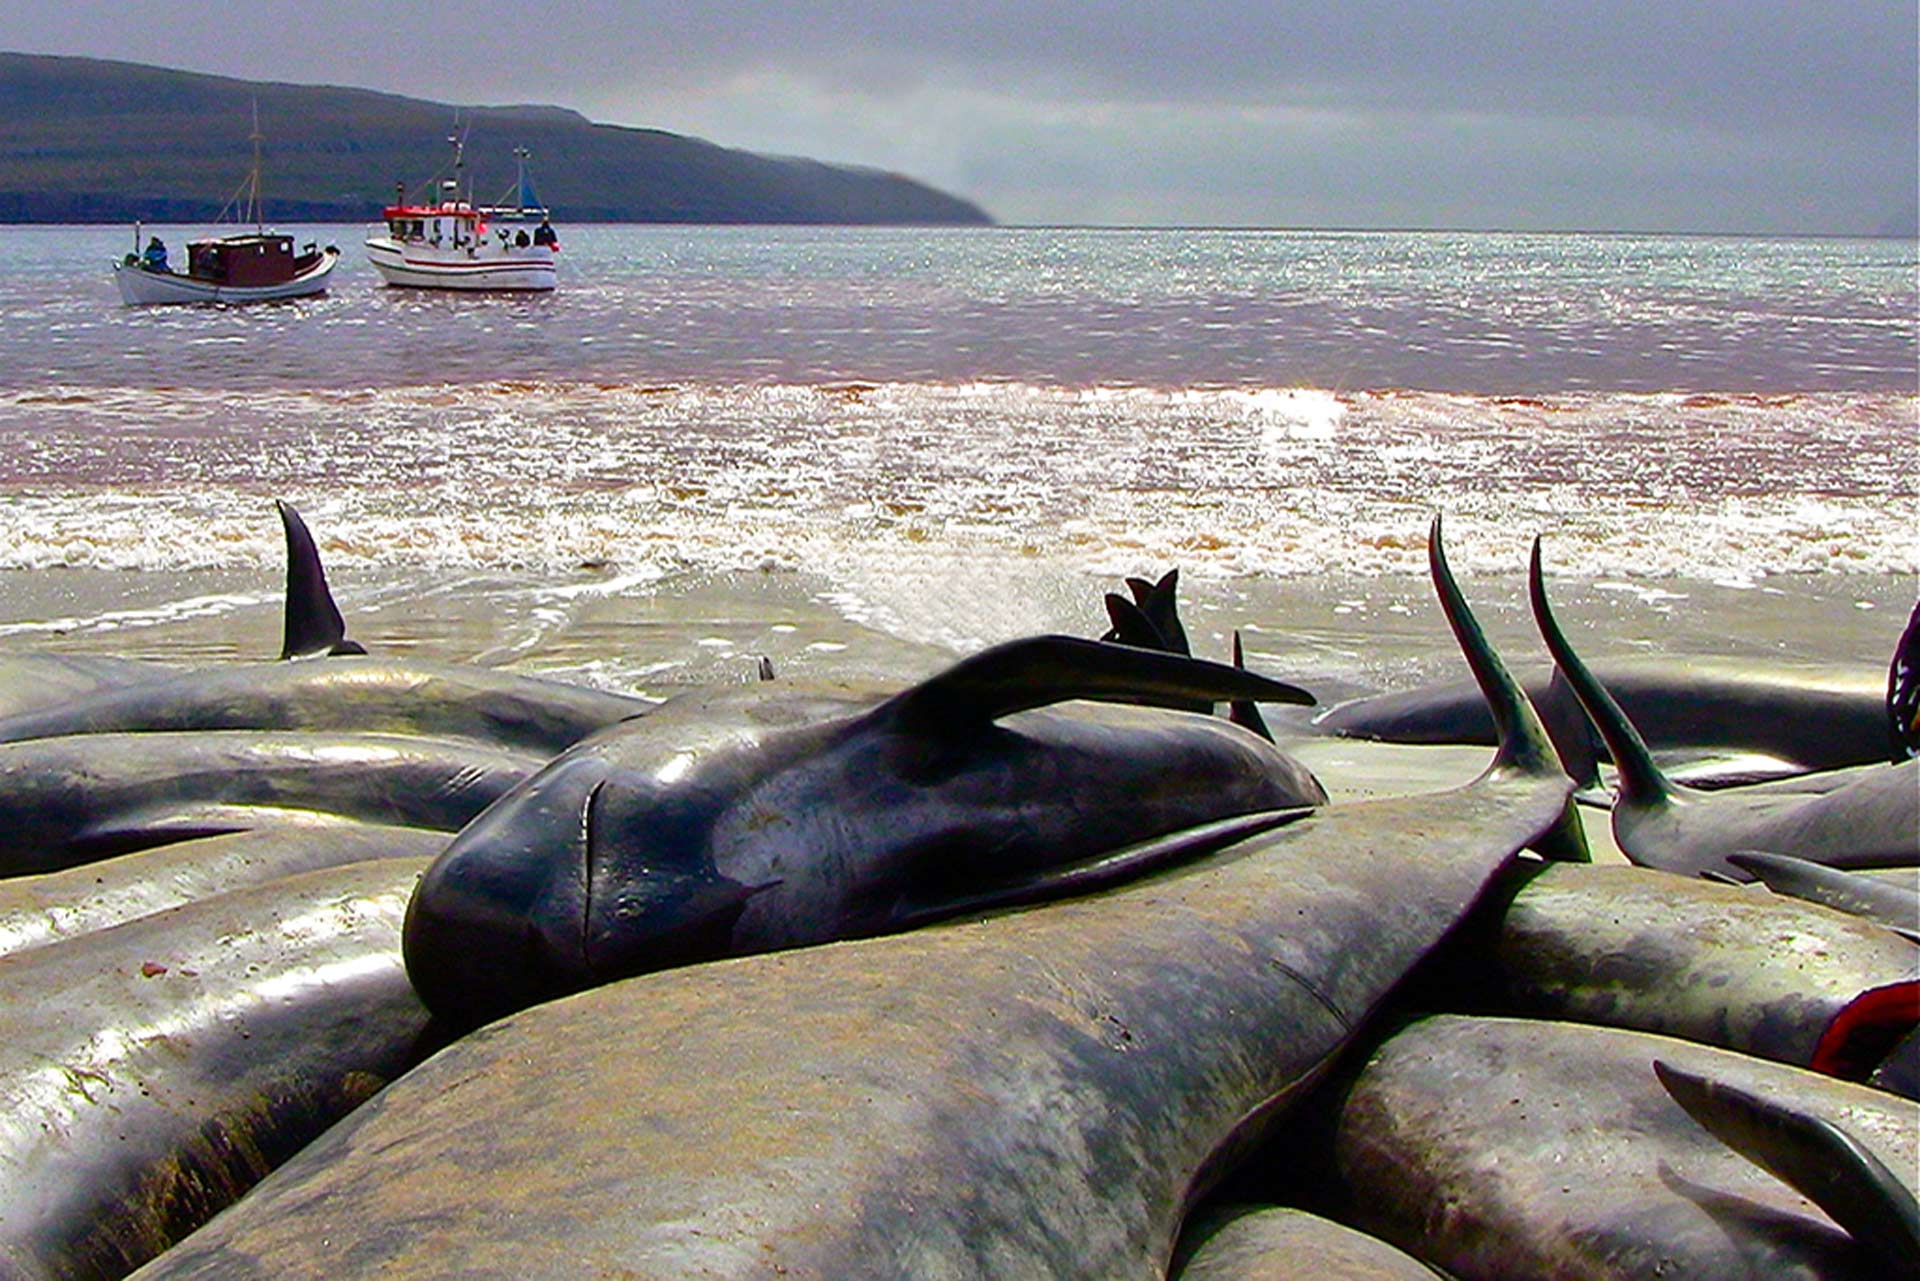 Hunted pilot whales. Photo was taken on June 5, 2012 in the Bay of Sandur. Photo: Leah Lemieux